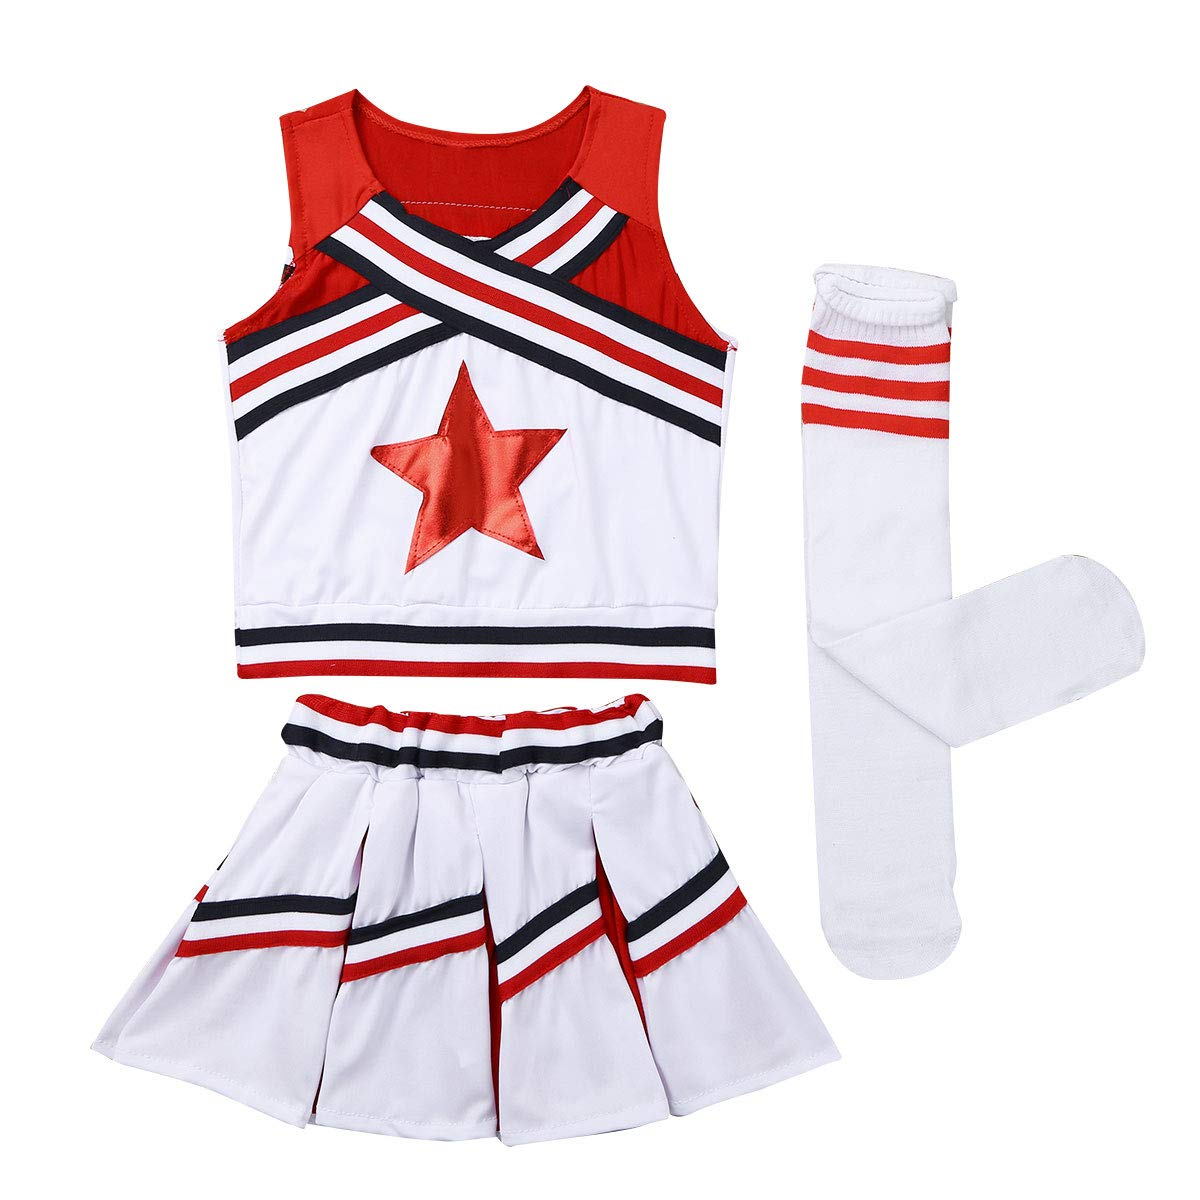 iEFiEL Youth Little Girls Cheer leader Cheerleading Outfit Uniform Costume Cosplay Top Vest with Pleated Skirt Socks